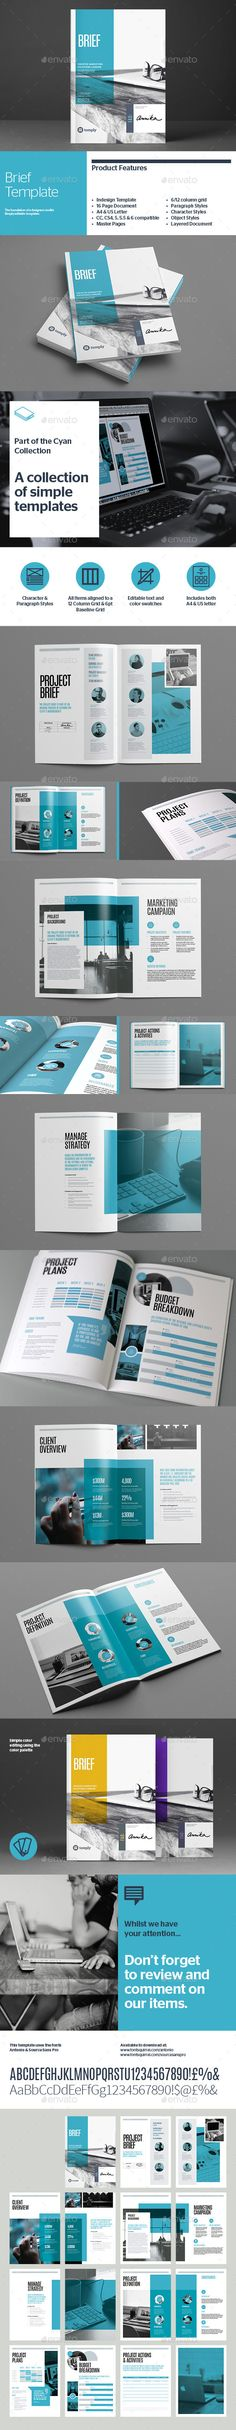 Brief Project Proposal InDesign Template v2